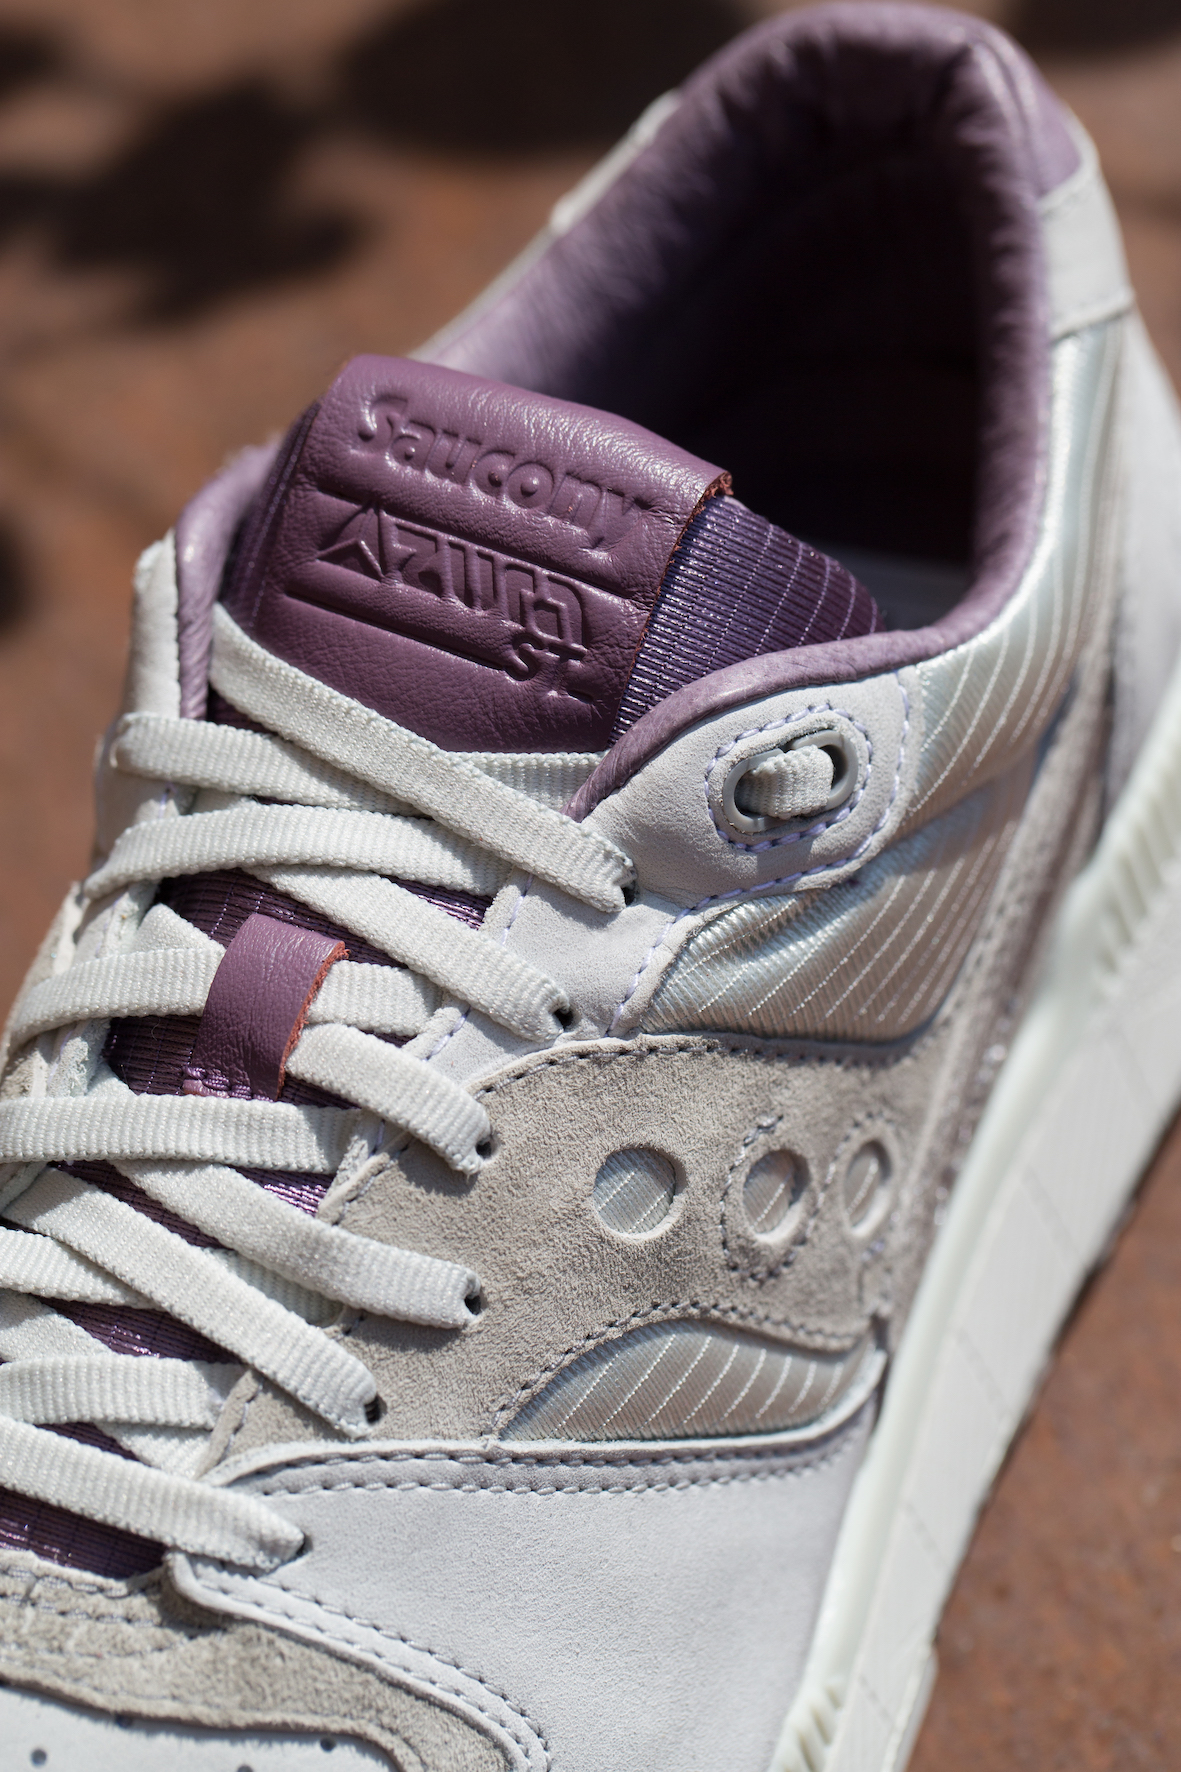 saucony azura weathered